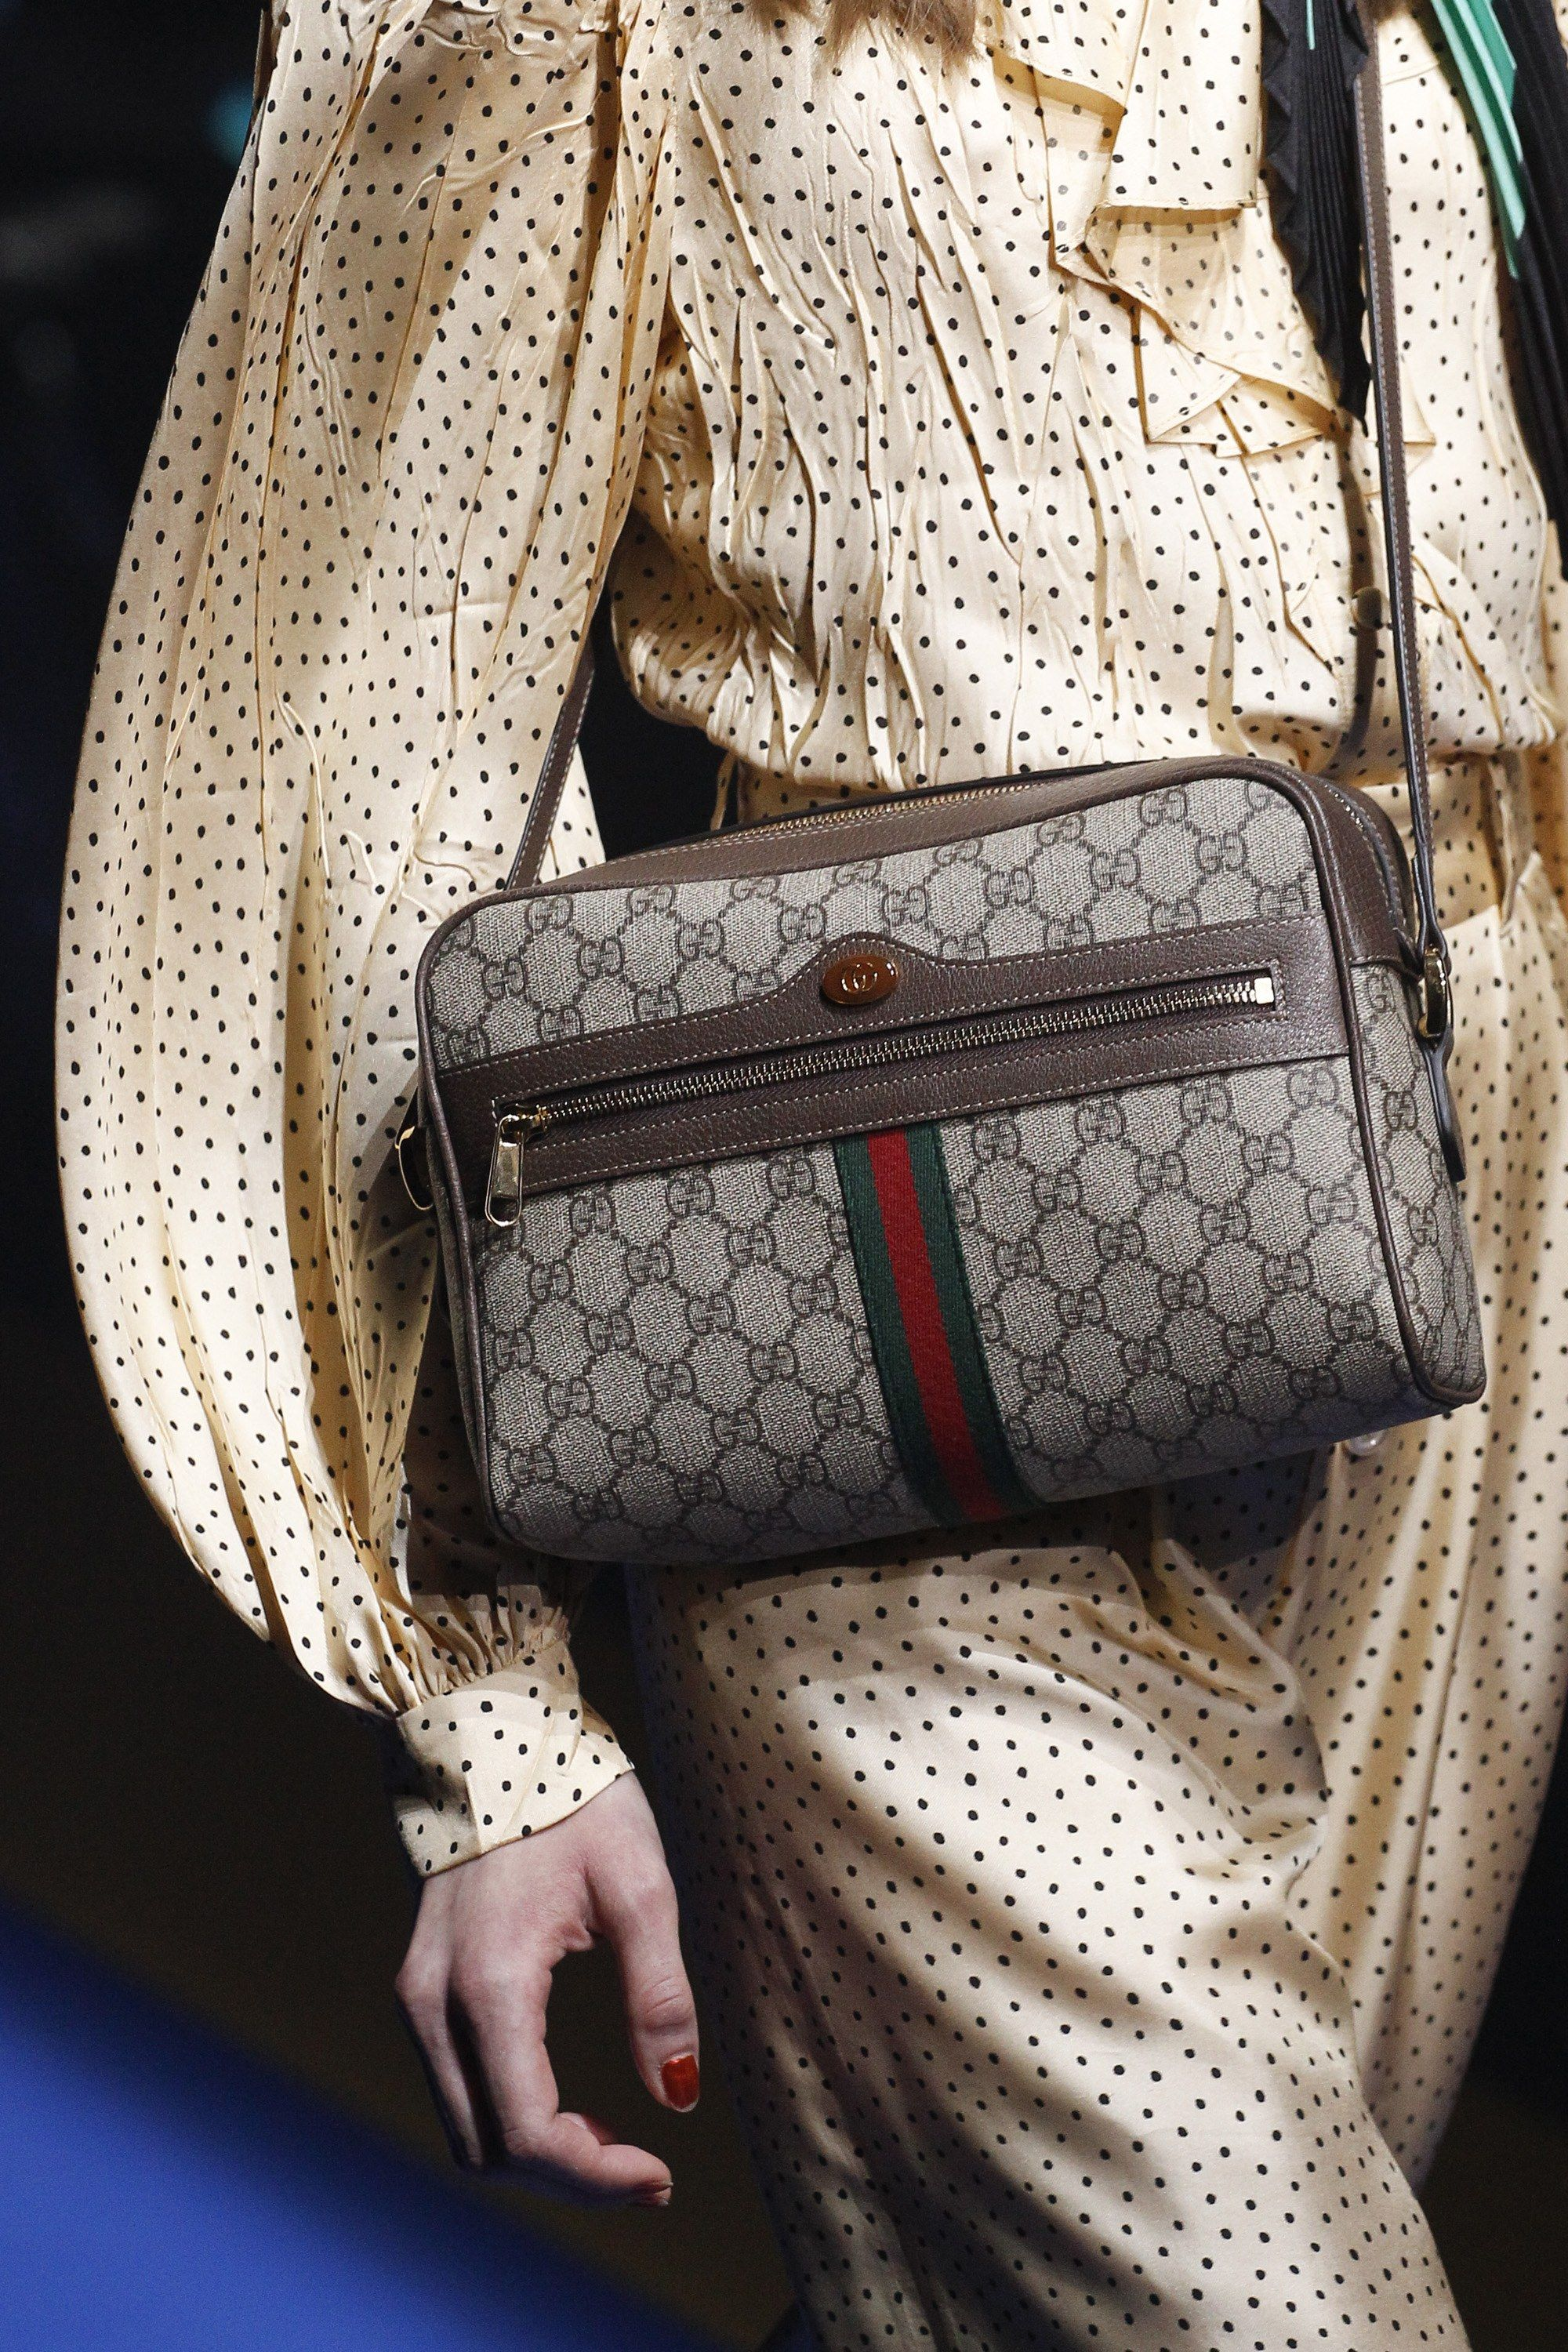 a4b643676d65 Gucci Spring 2018 Ready-to-Wear Fashion Show | Edgy bags with an ...